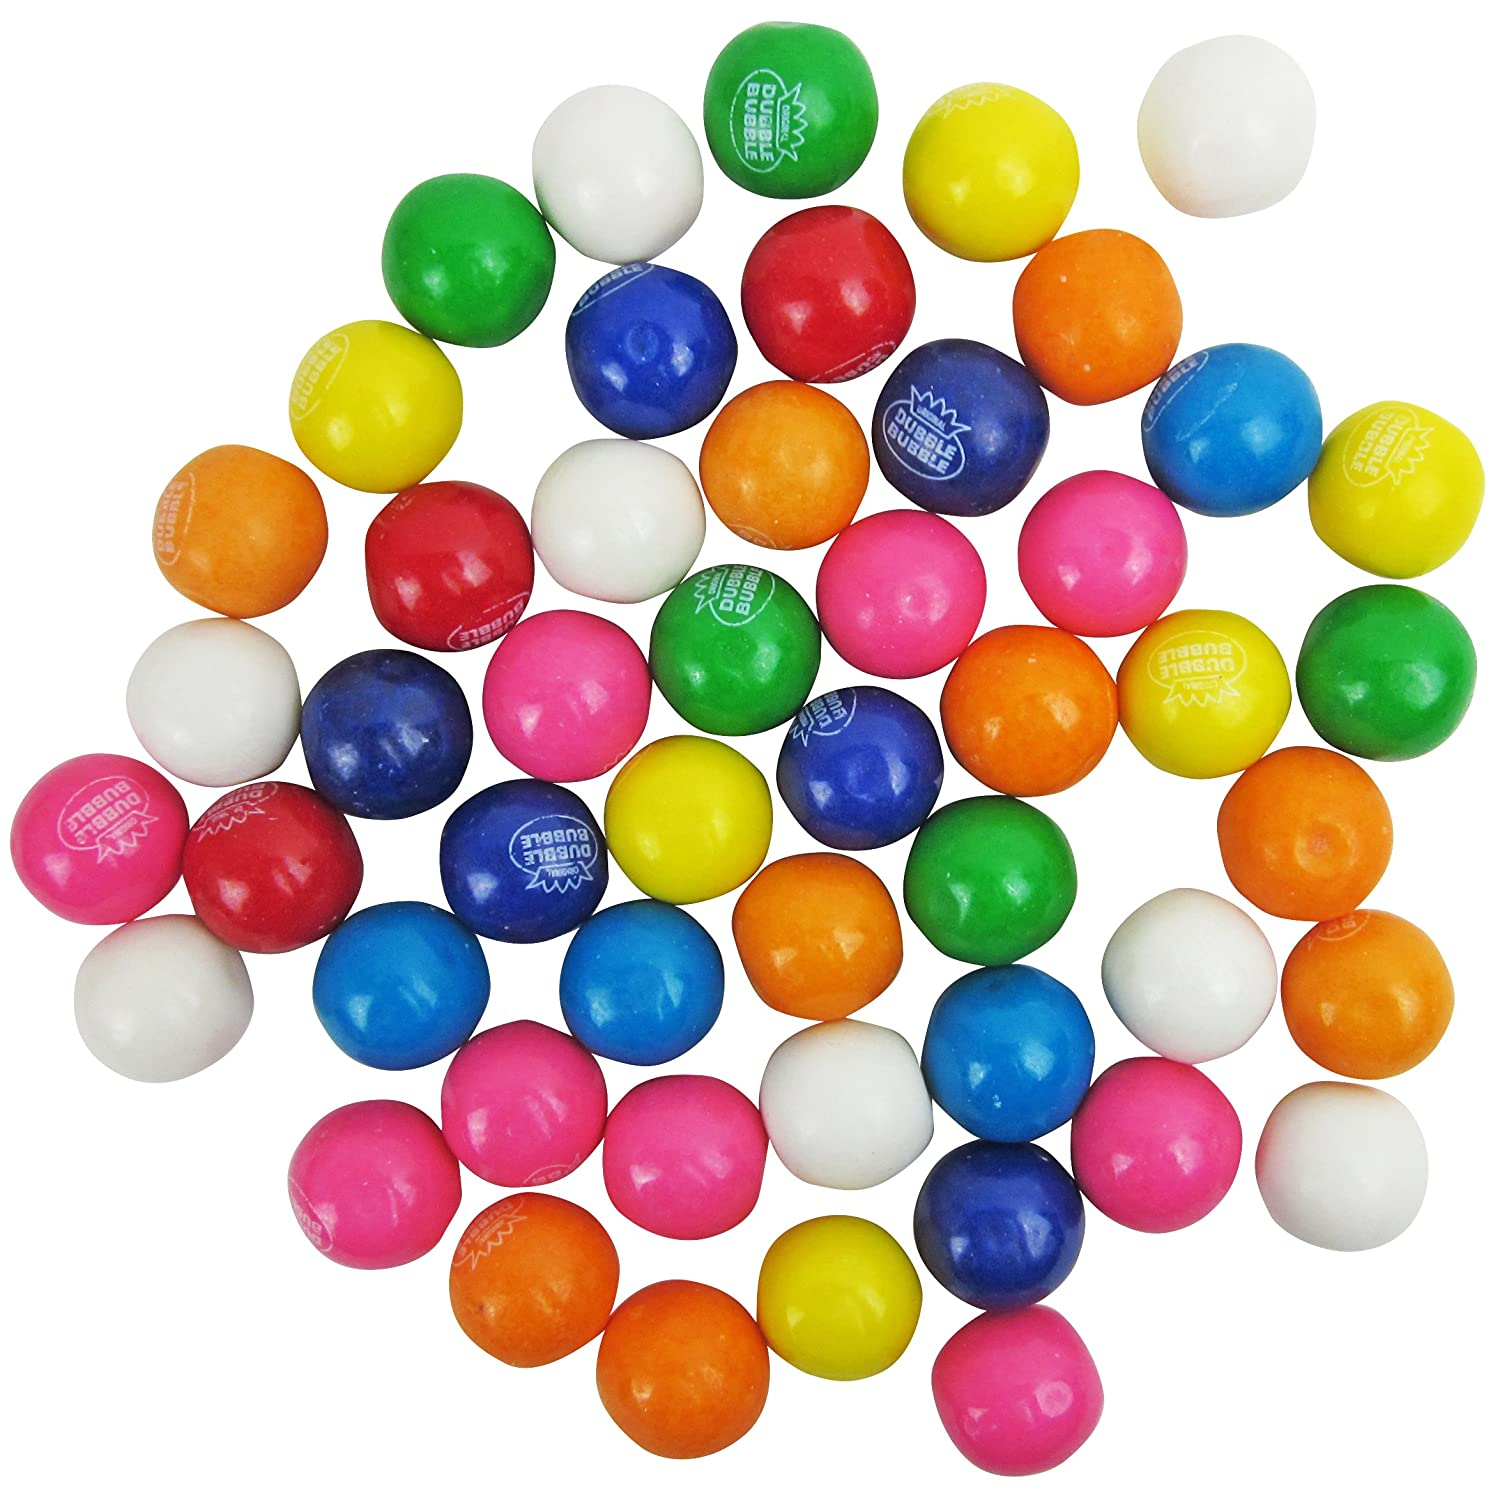 A Great Surprise Burbuja de Dubble chicles - chicles a granel - Gumballs rellenar - chicles para máquinas Gumball - chicles surtidos de 1 pulgada, ...